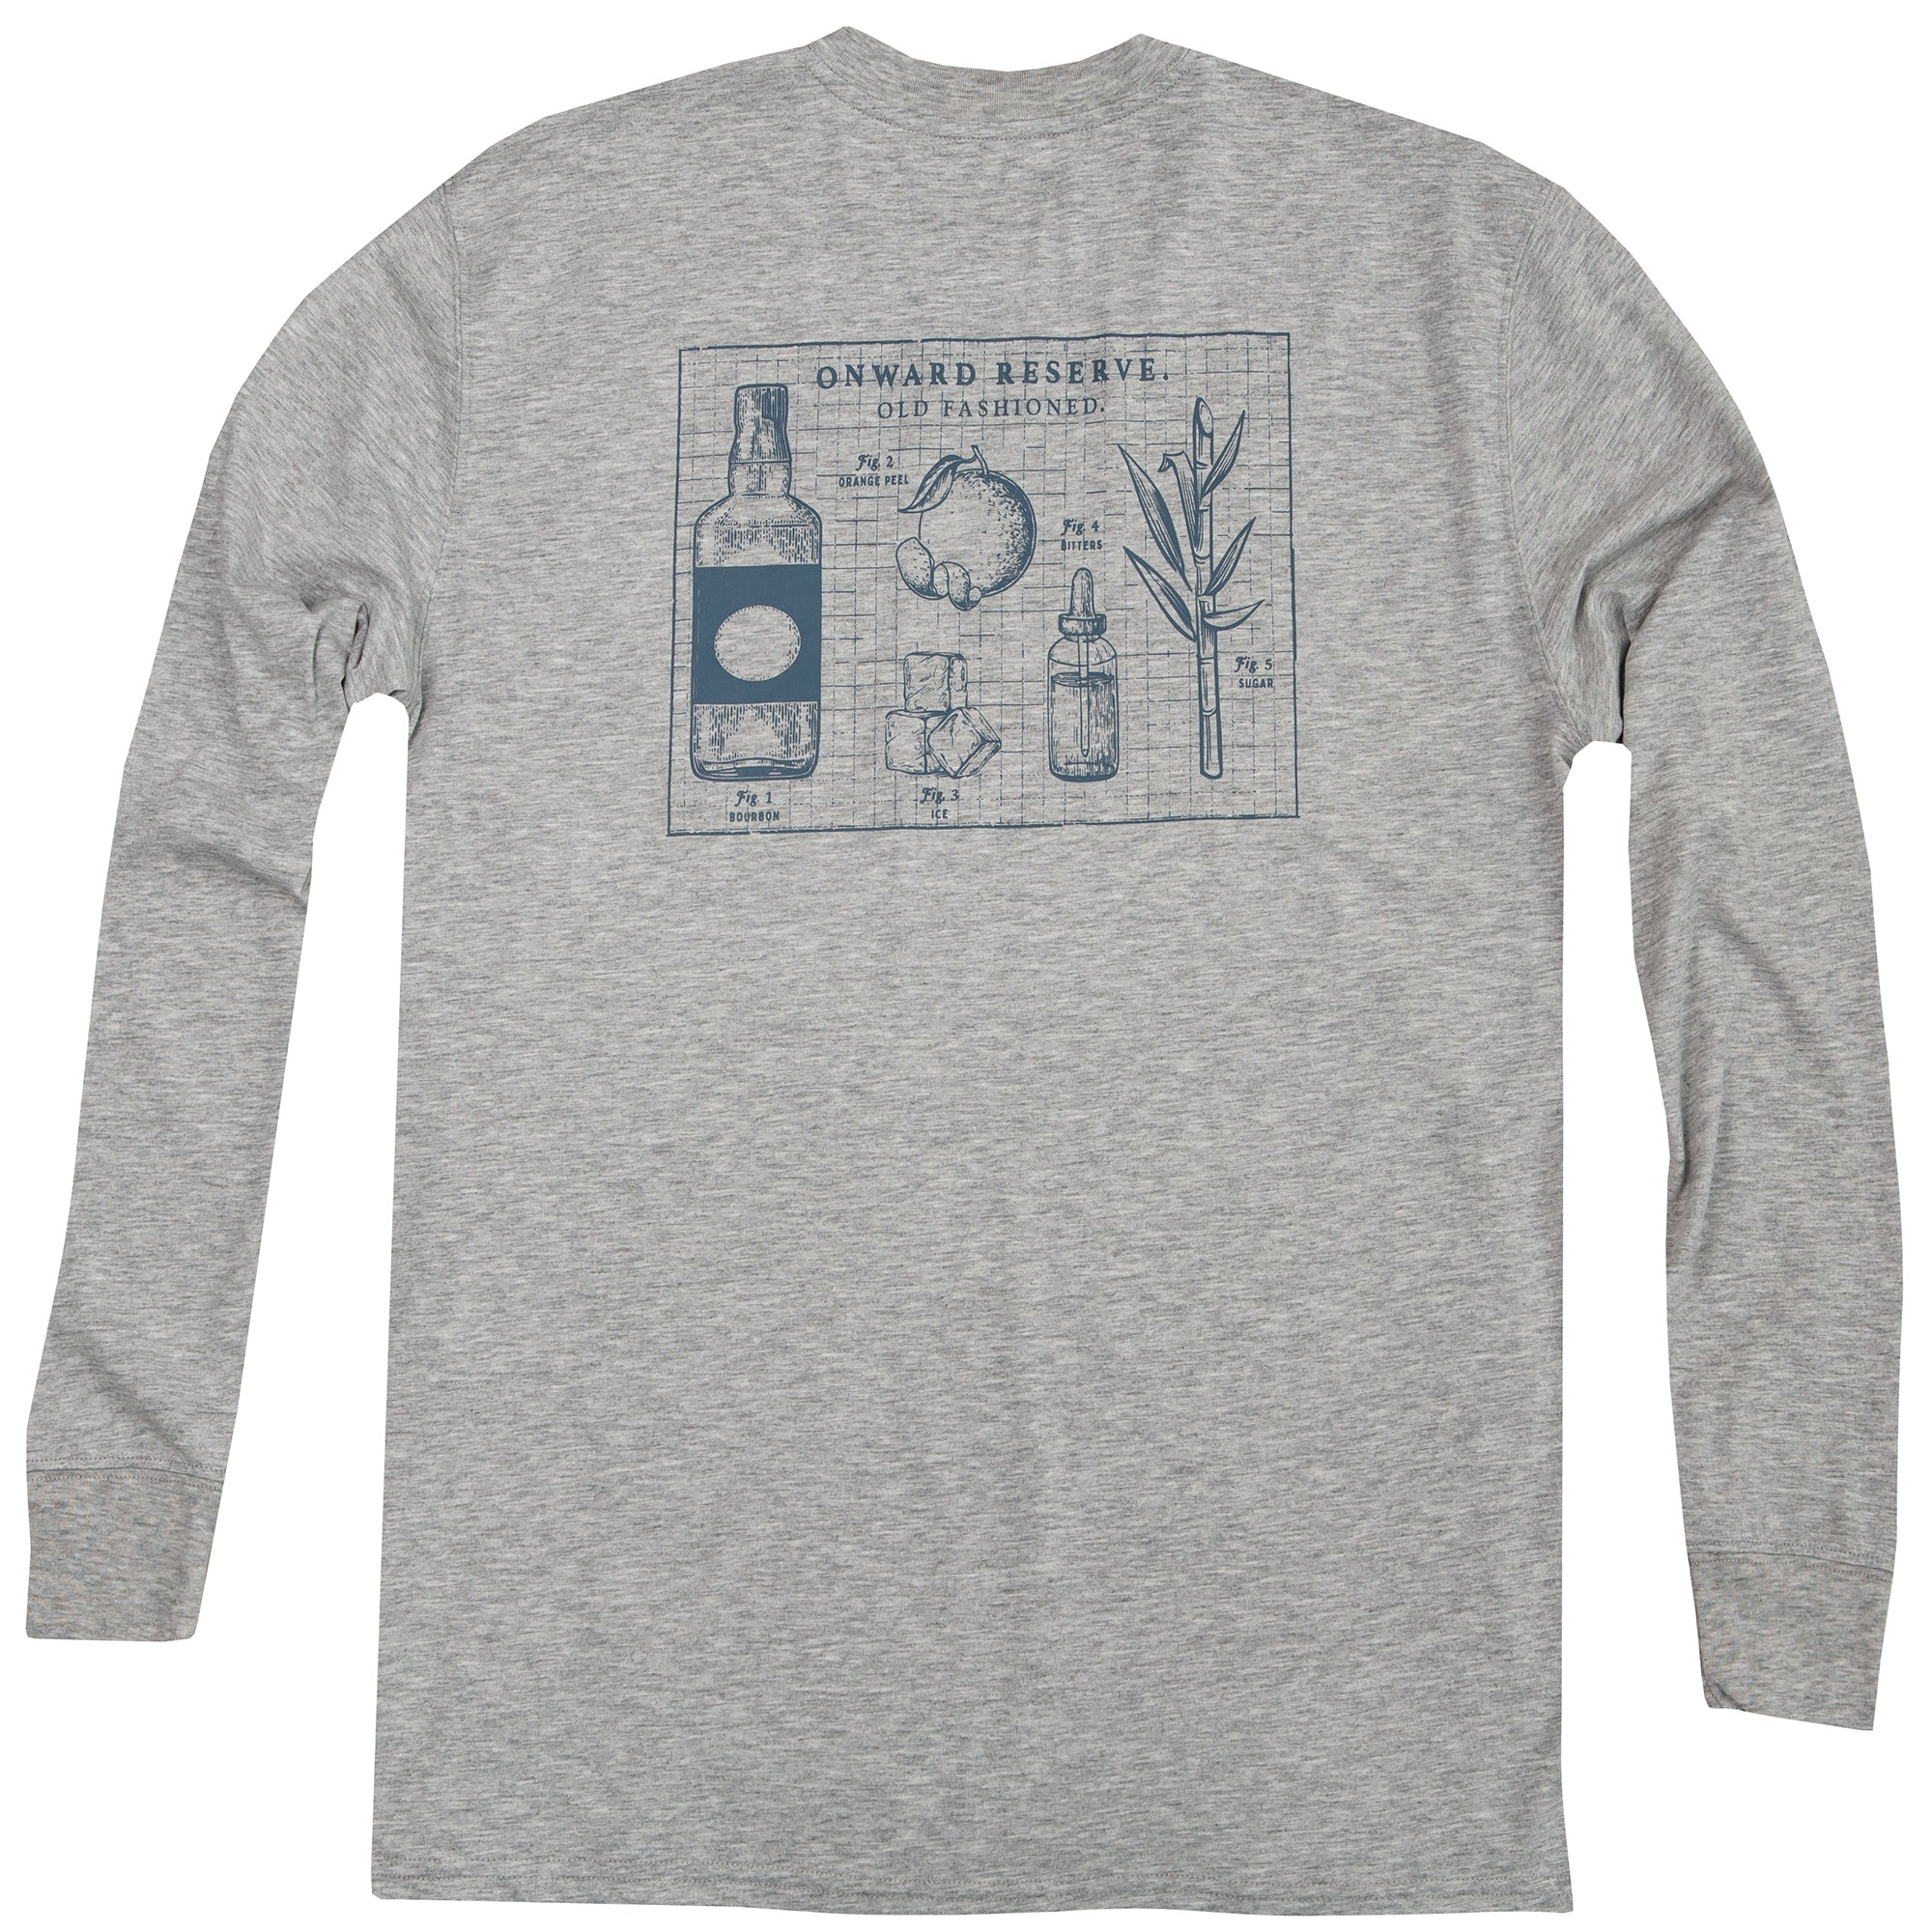 Old Fashioned Long Sleeve Tee